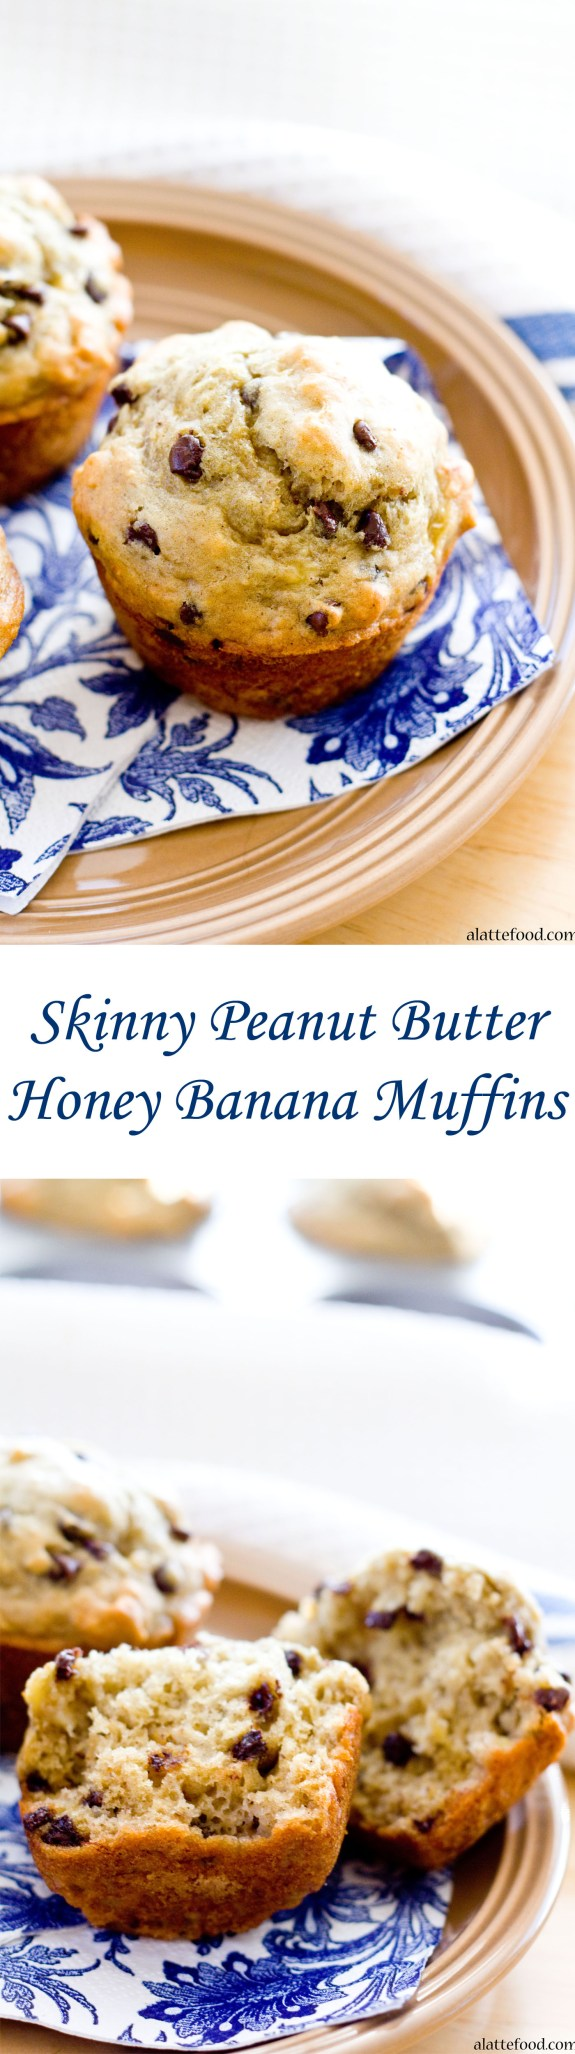 Skinny Peanut Butter Honey Banana Muffins | A Latte Food